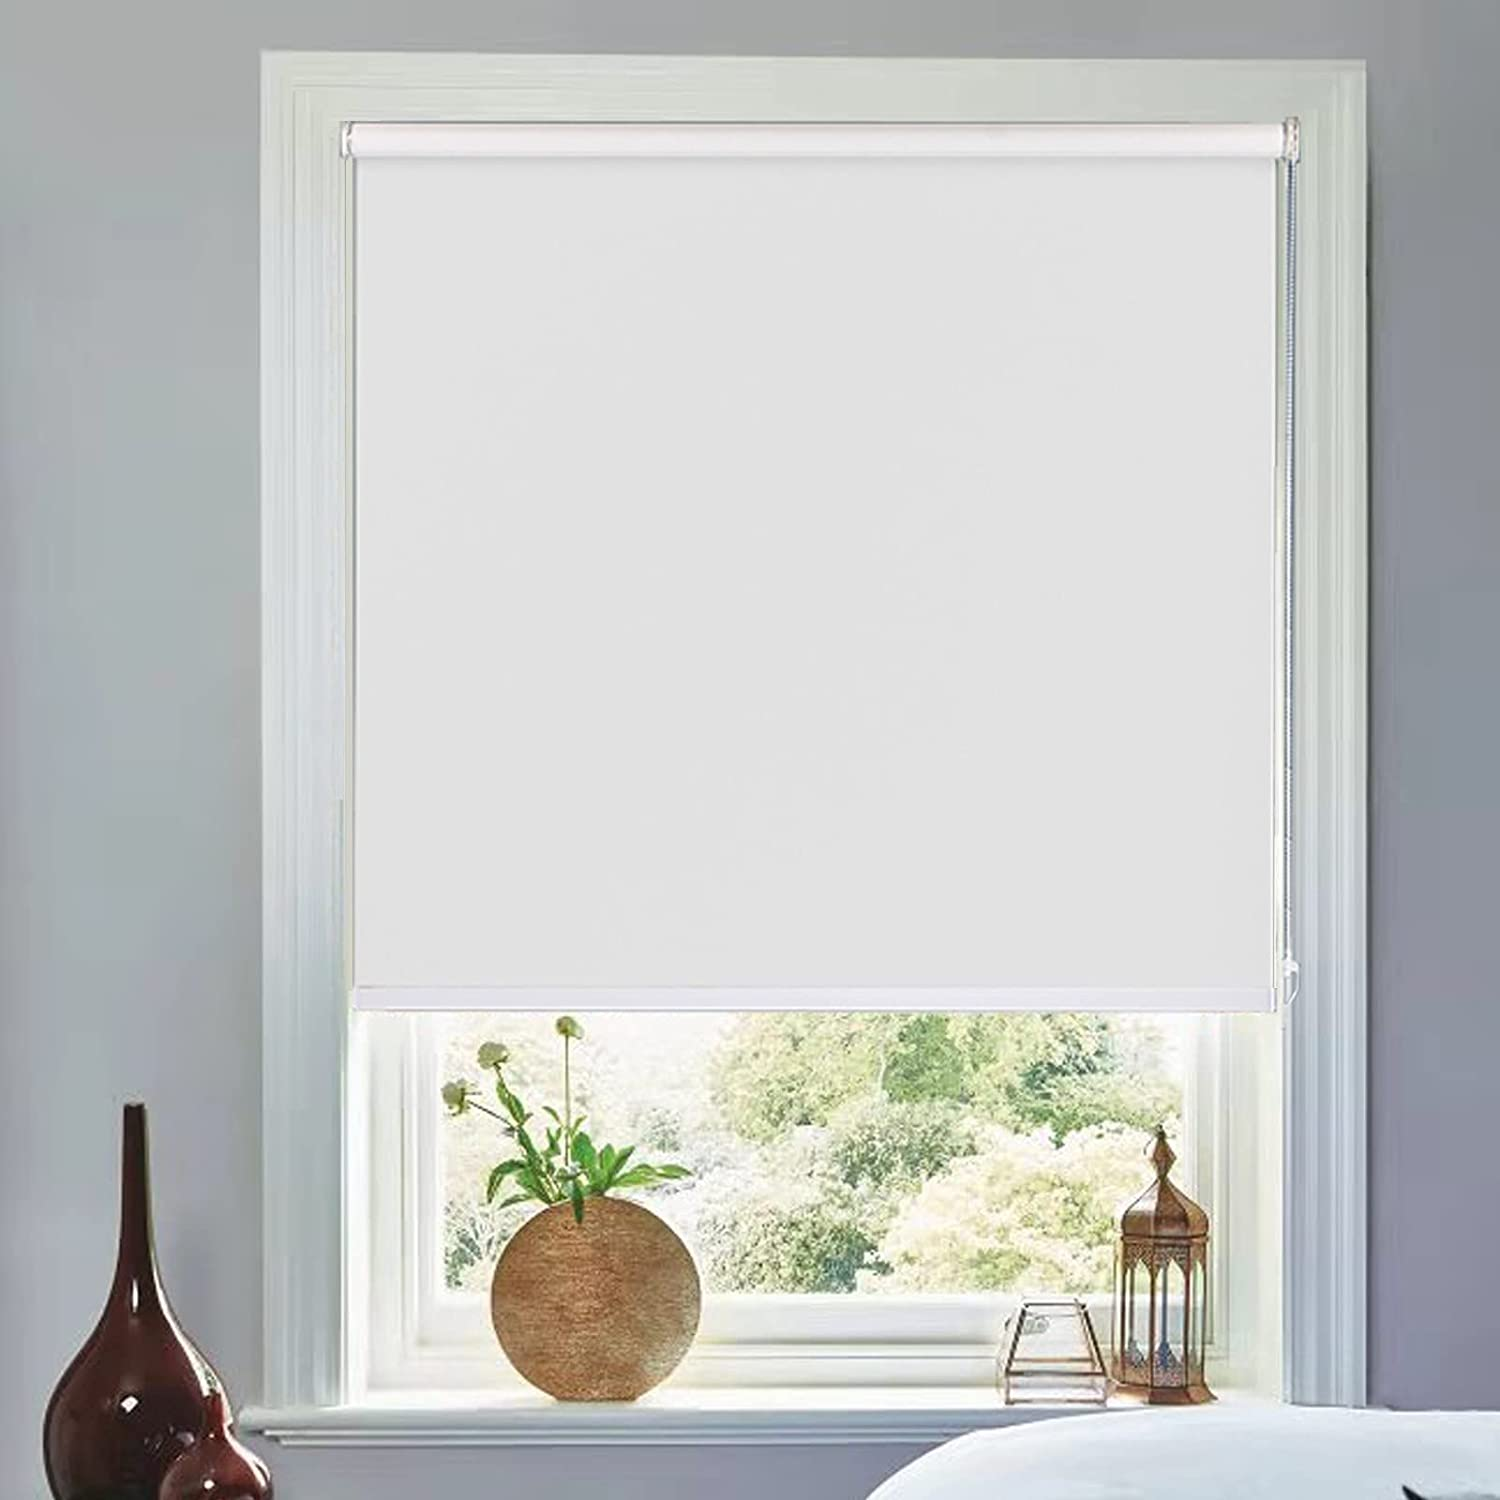 WEHEME Blackout Blinds Roller Window Shades for Ins Thermal Trust Home 2021 spring and summer new